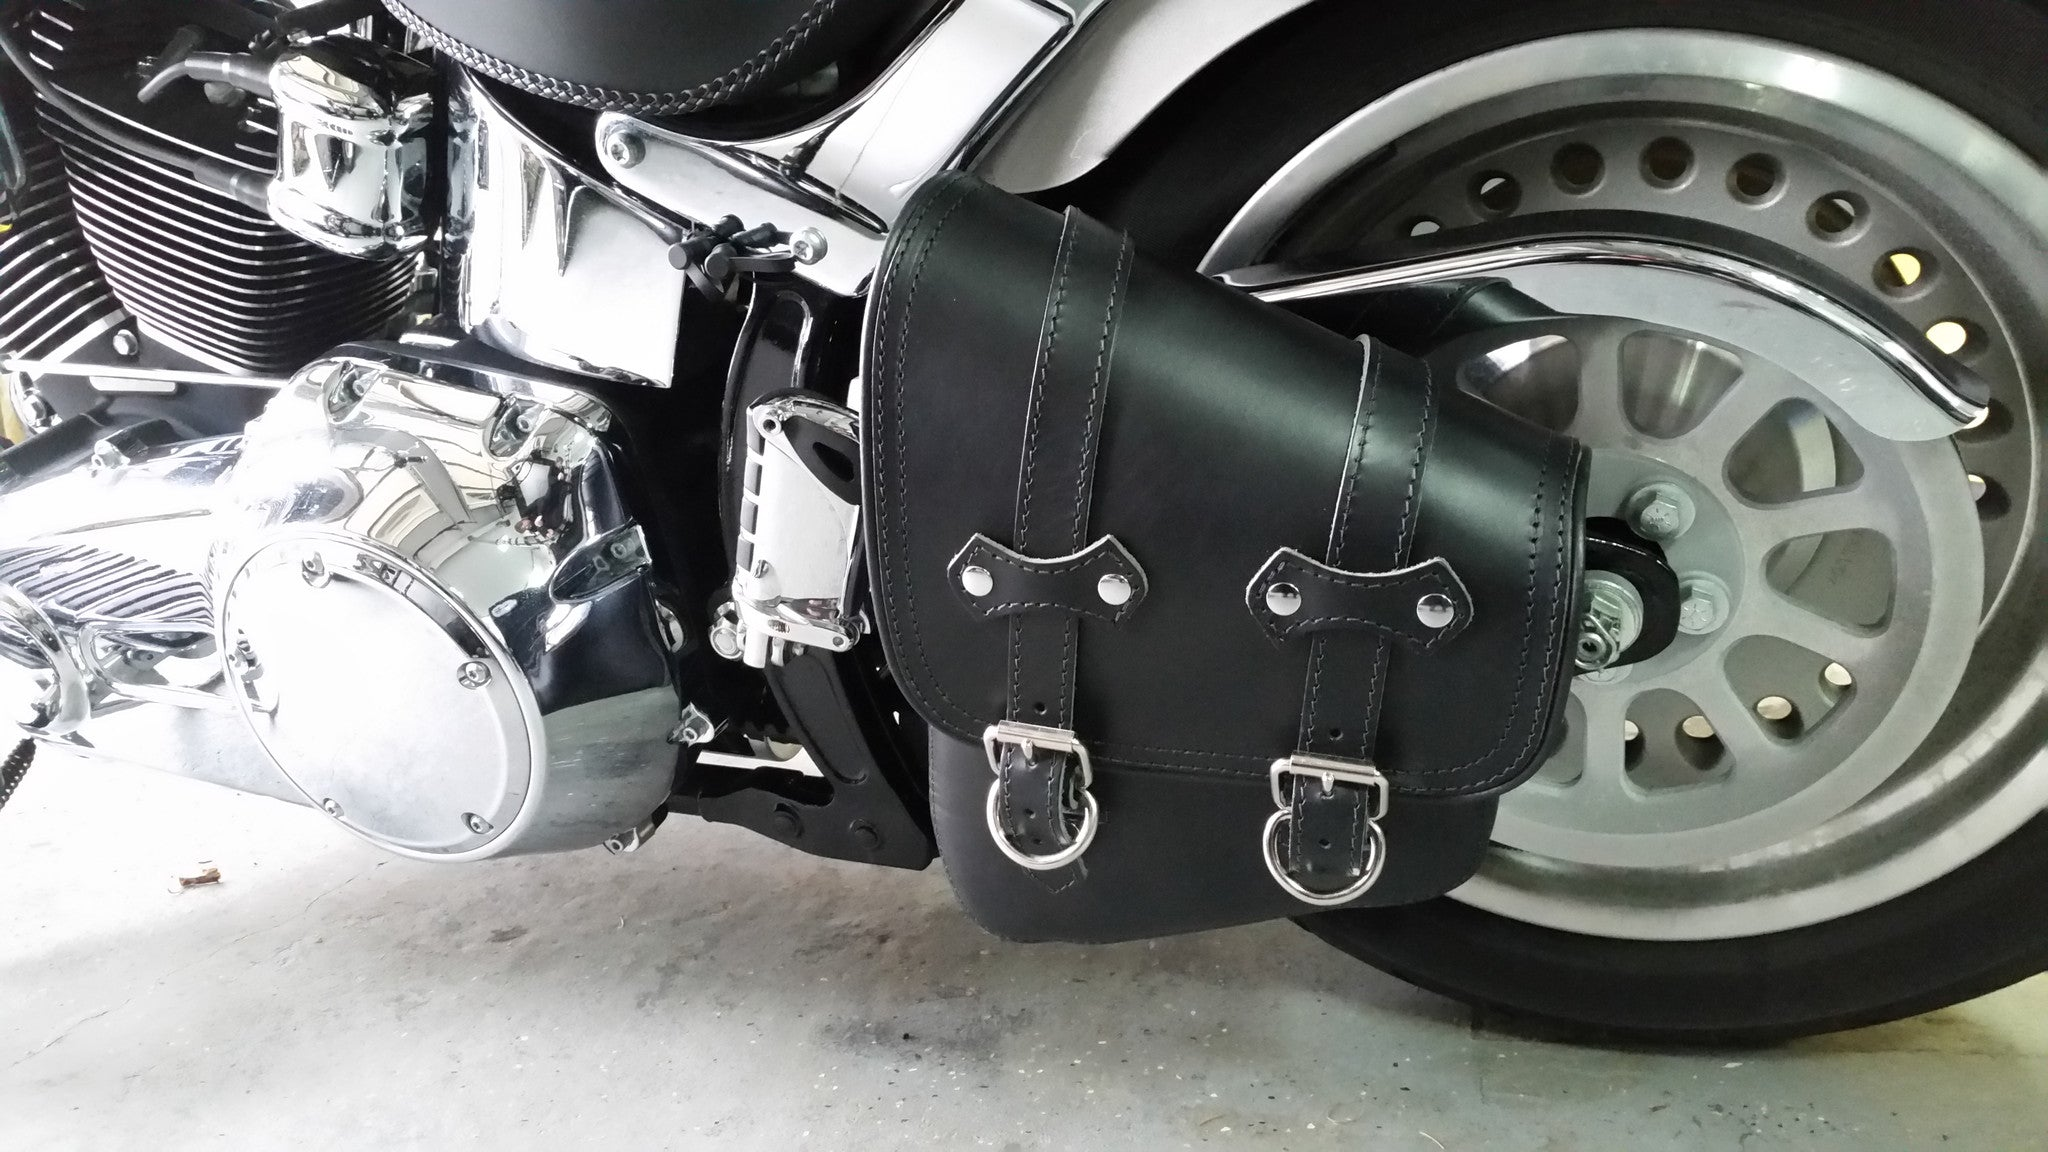 Bobber Bag Leather Solo Swingarm Bag for Harley Softail, Rigids, Bobbers